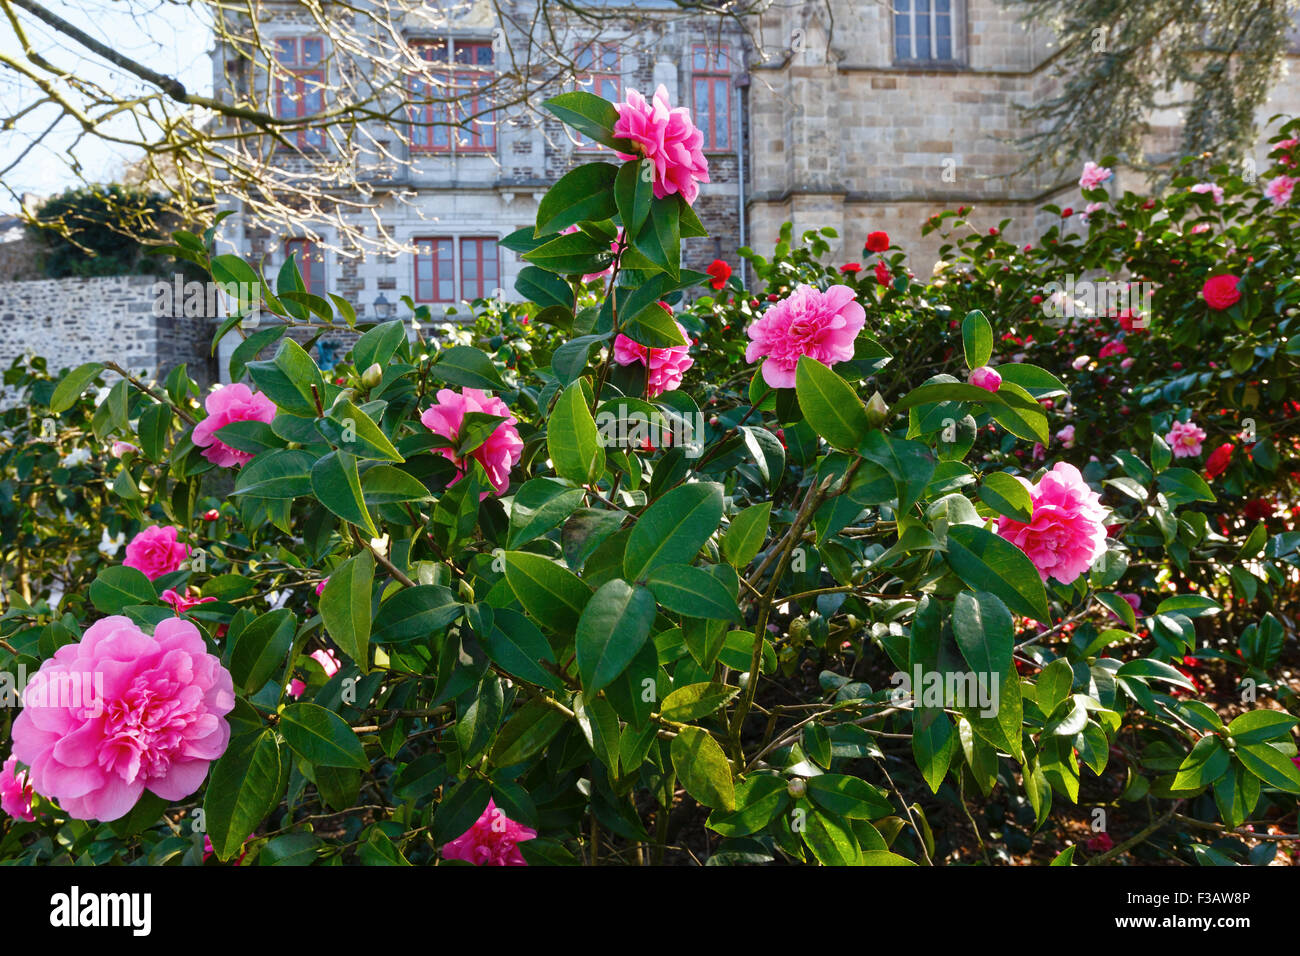 Blossoming Camellia Bush With Pink Flowers And Thick Leaves In Stock